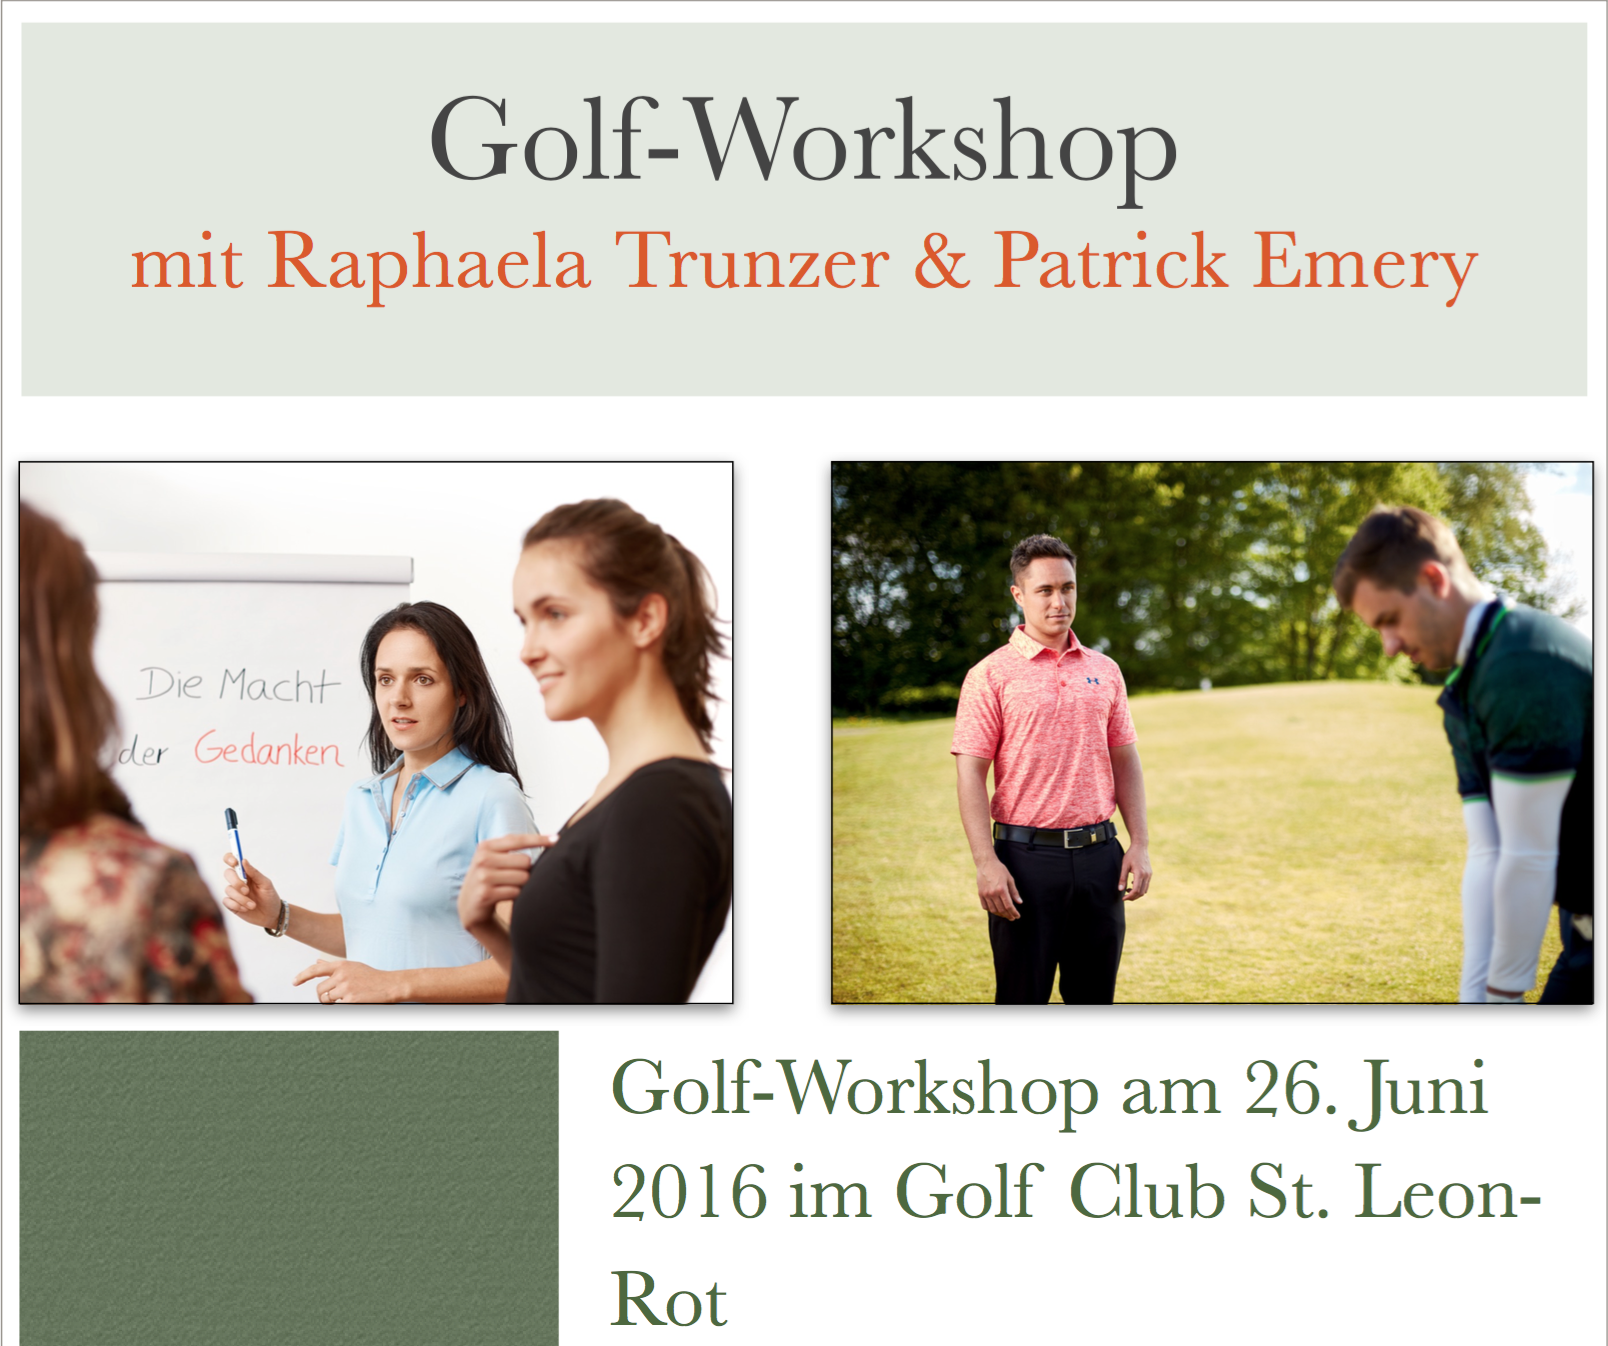 Golf- Workshop mit Raphaela Trunzer und Patrick Emery im Golf Club St. Leon- Rot